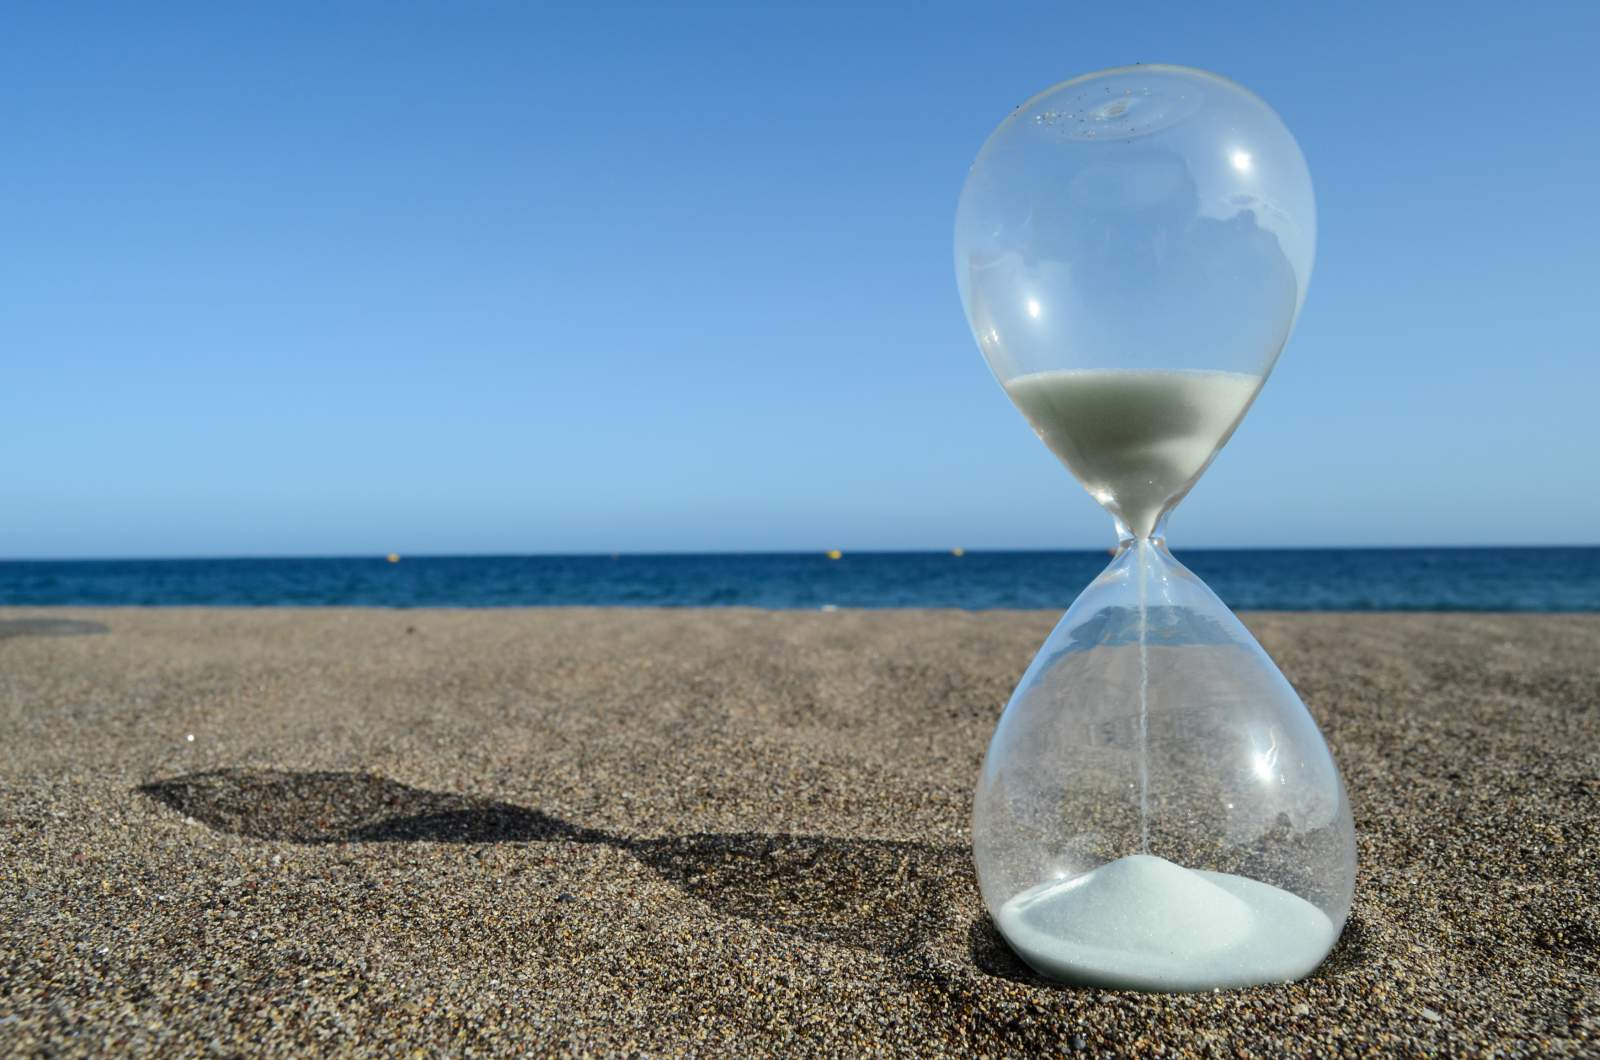 Hourglass on the beach